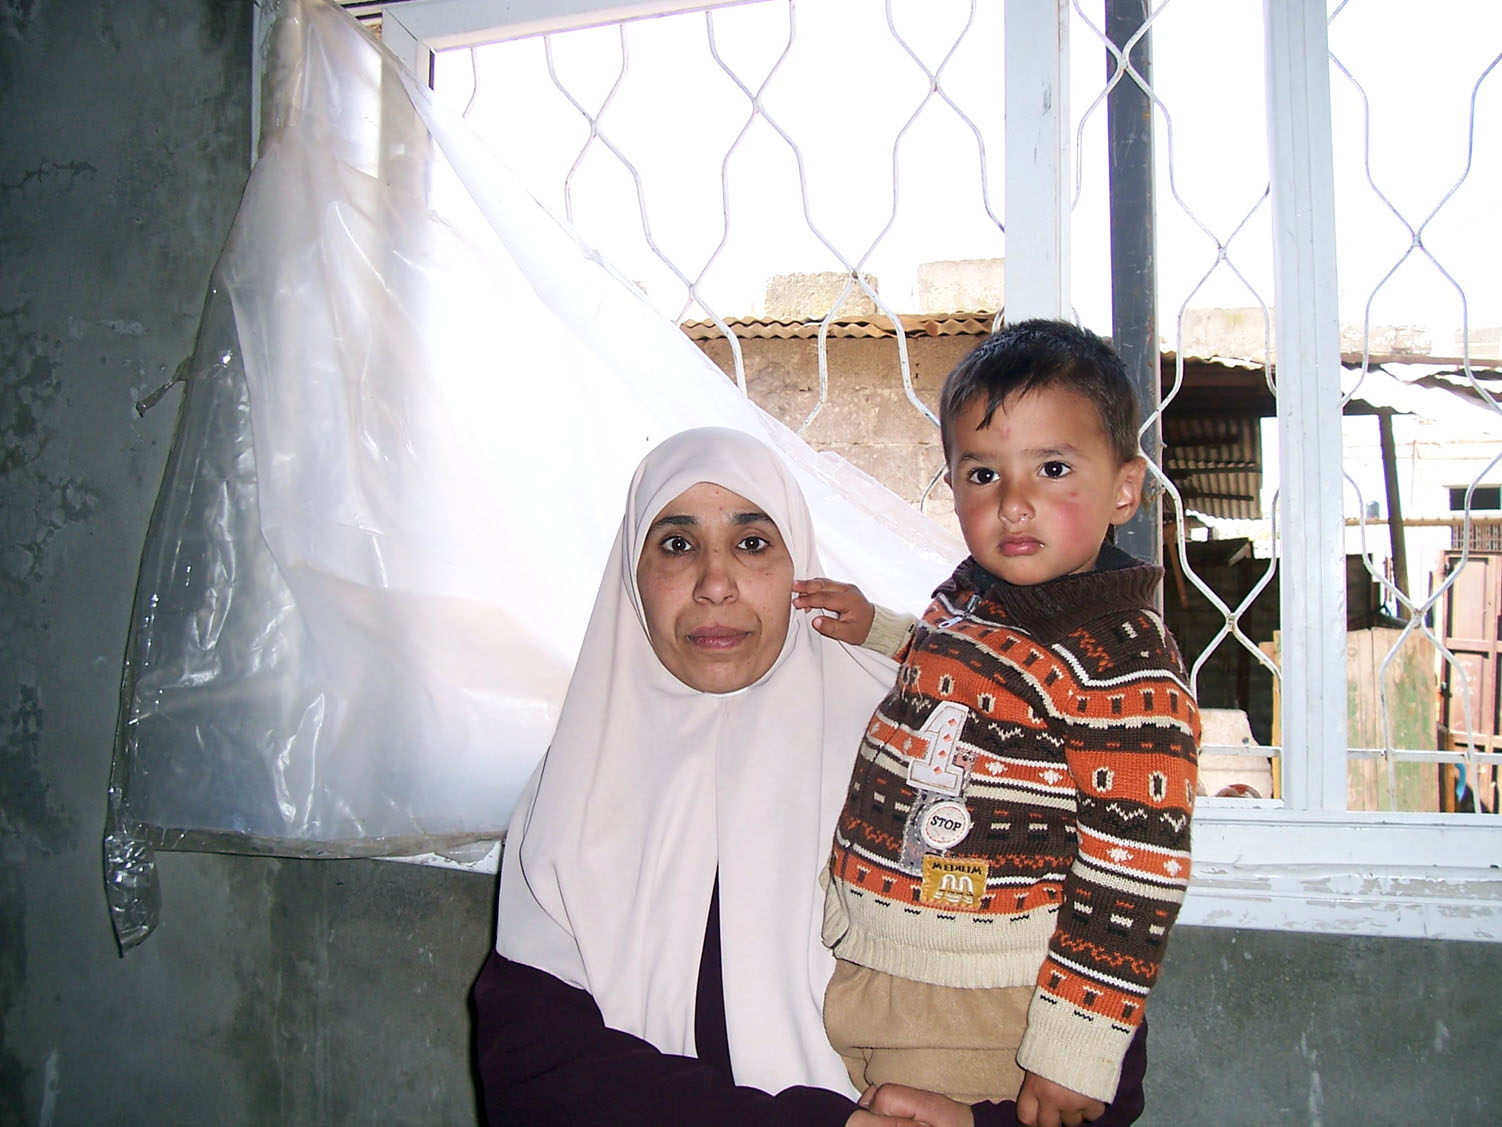 Two-year-old Ahmed from the Al-Tufa area of Gaza City lost his father during the recent conflict. His aunt and uncle are now his primary caretakers. Ahmed is seen being held by his aunt next to the missing windows of their home, shelled by Israeli tank-fi